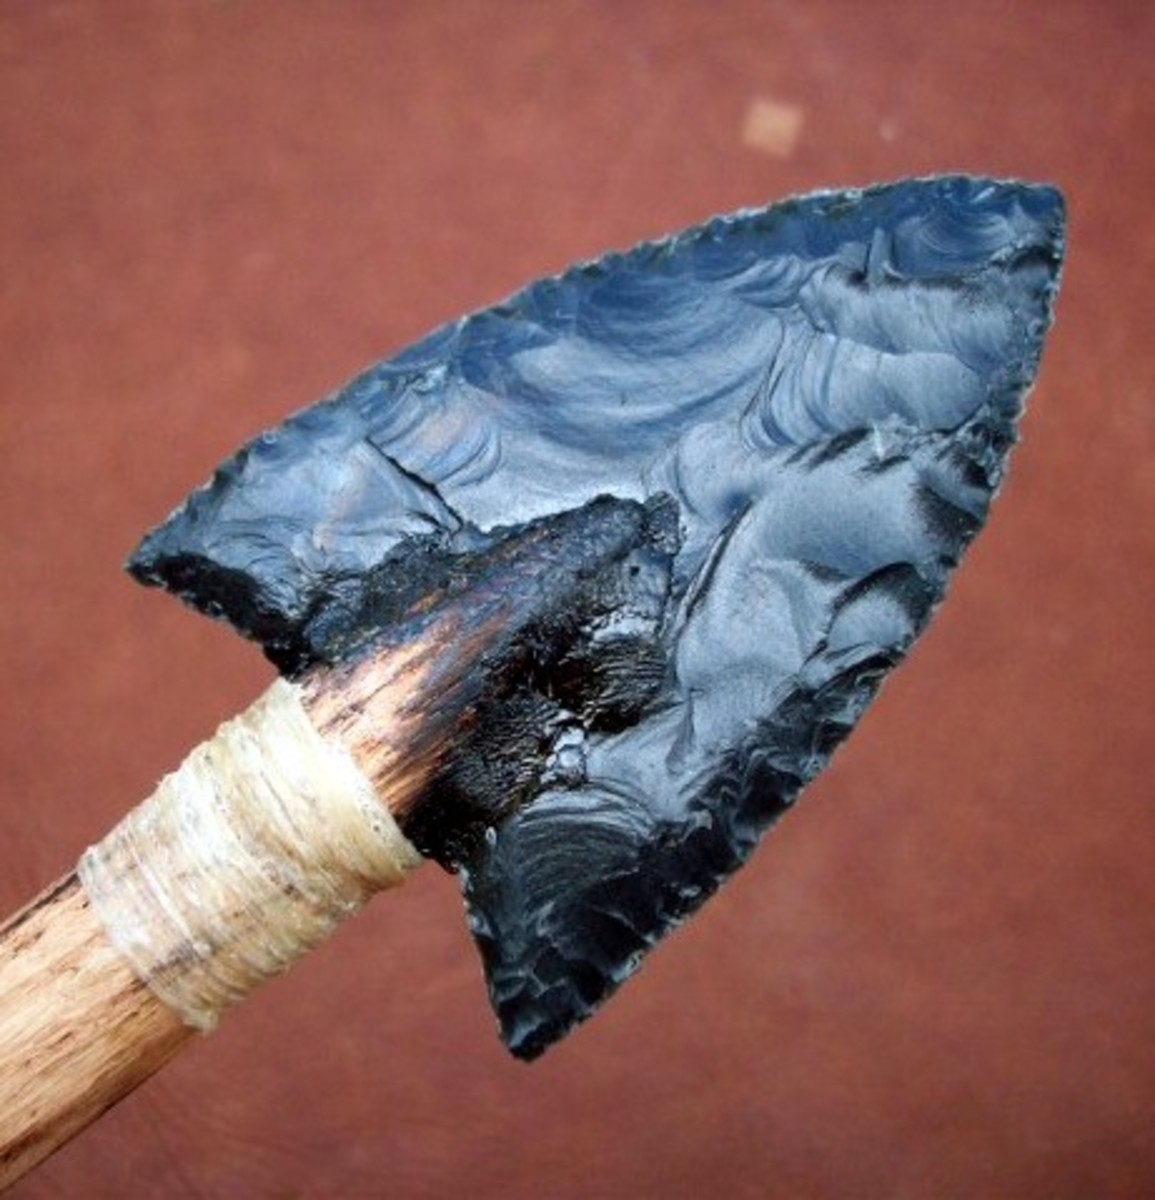 When Iron Age flint arrow heads were found in the ground during the Middle Ages up through the 19th century, many people thought they were elf arrows.